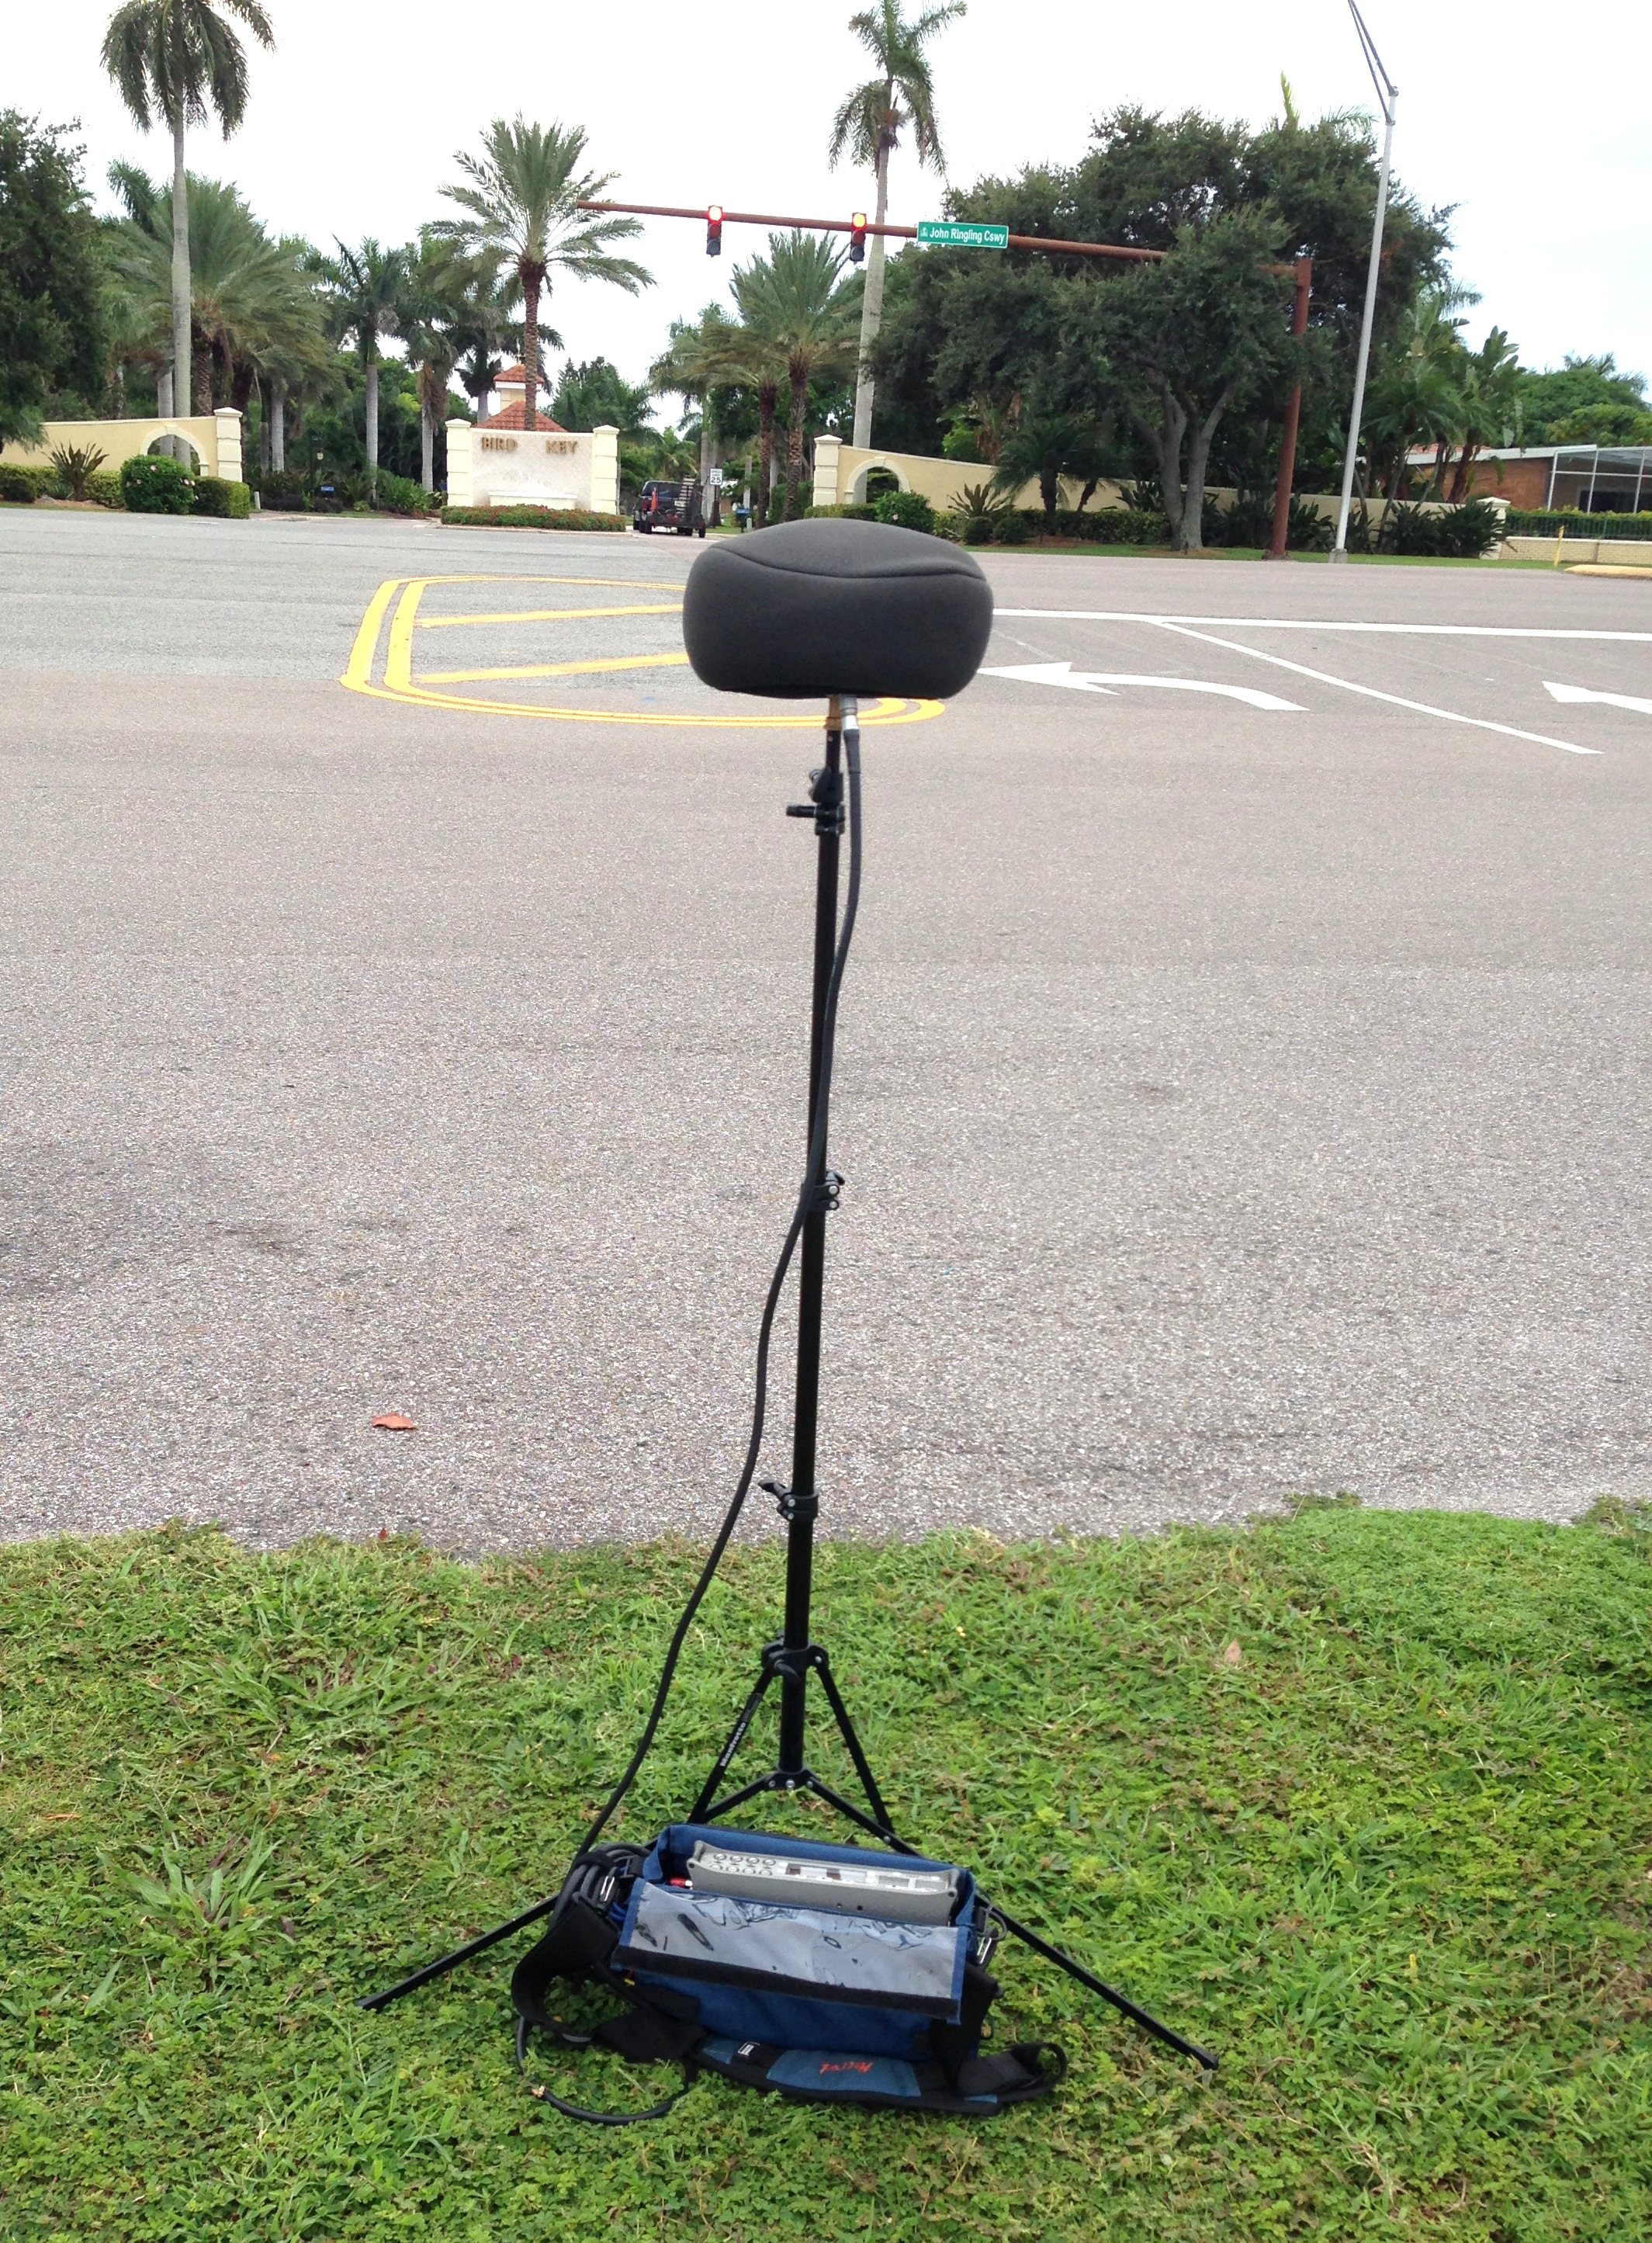 On my  Manfrotto 5001B  light stand is a  DPA 5100  5.1 surround sound mic. This mic has 6 XLR audio cables that were connected to my  Sound Device 788T-SSD  field recorder.